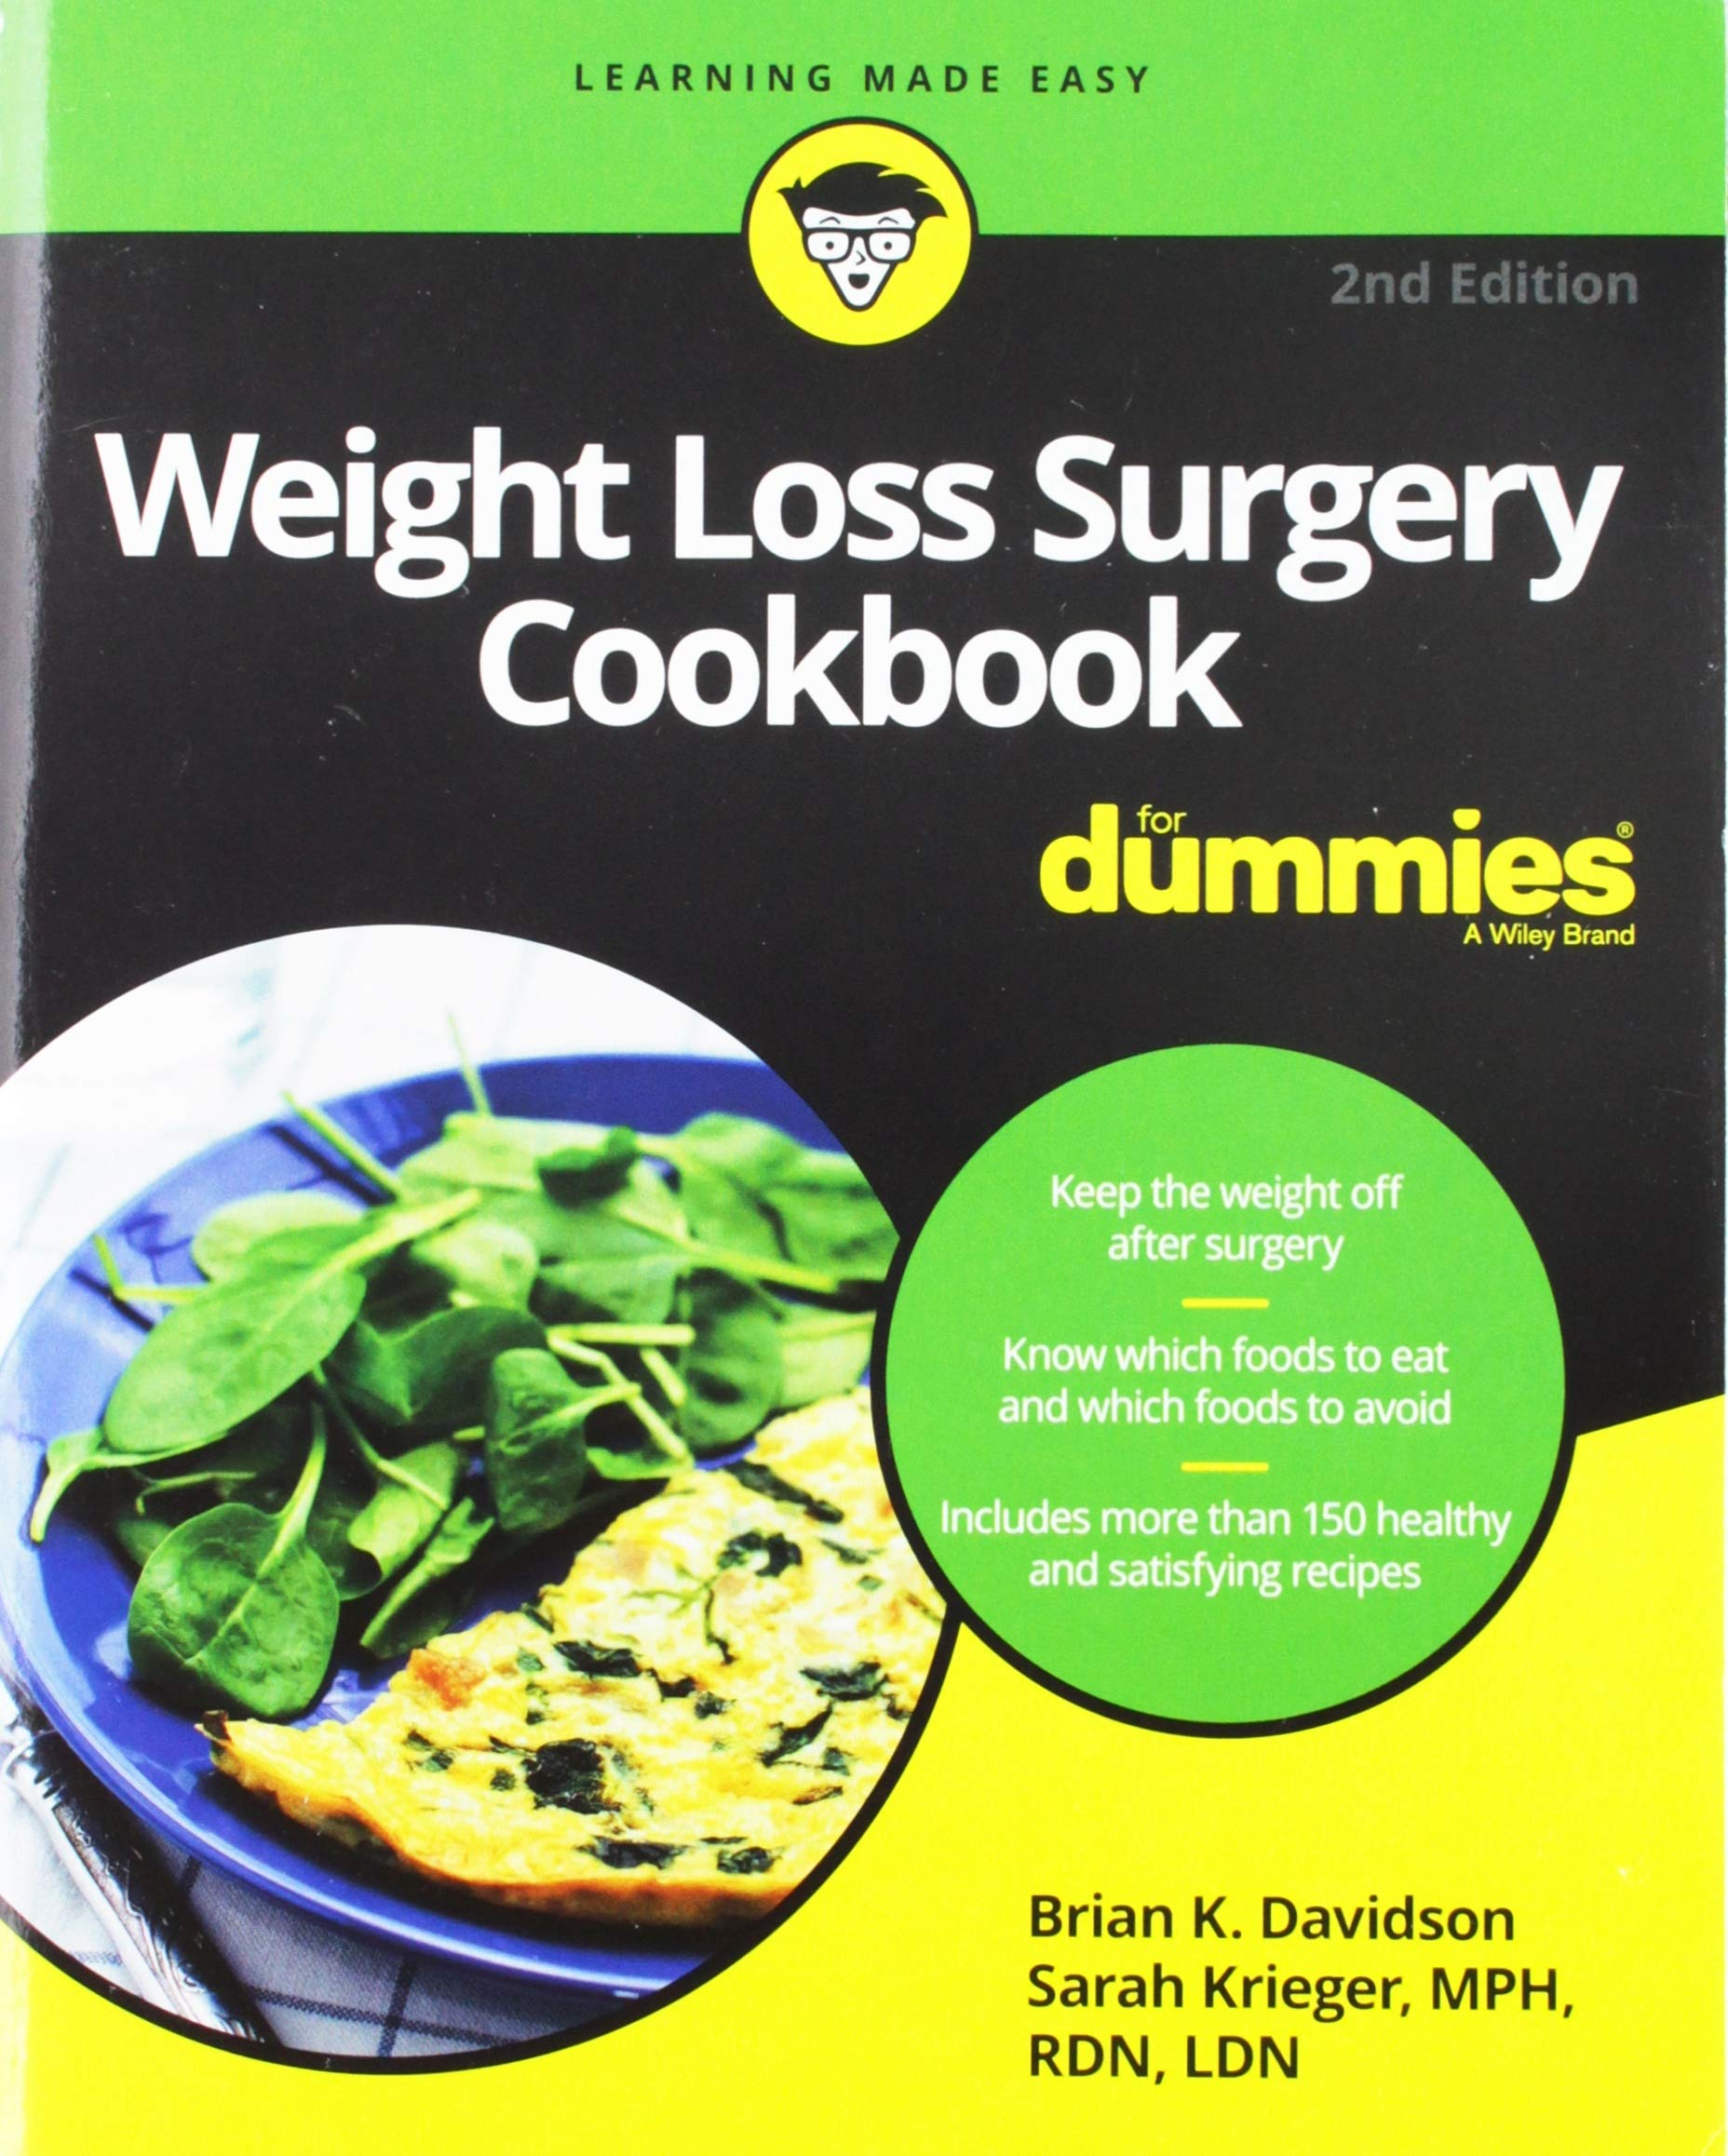 Weight Loss Surgery Cookbook For Dummies 2nd Edition For Dummies